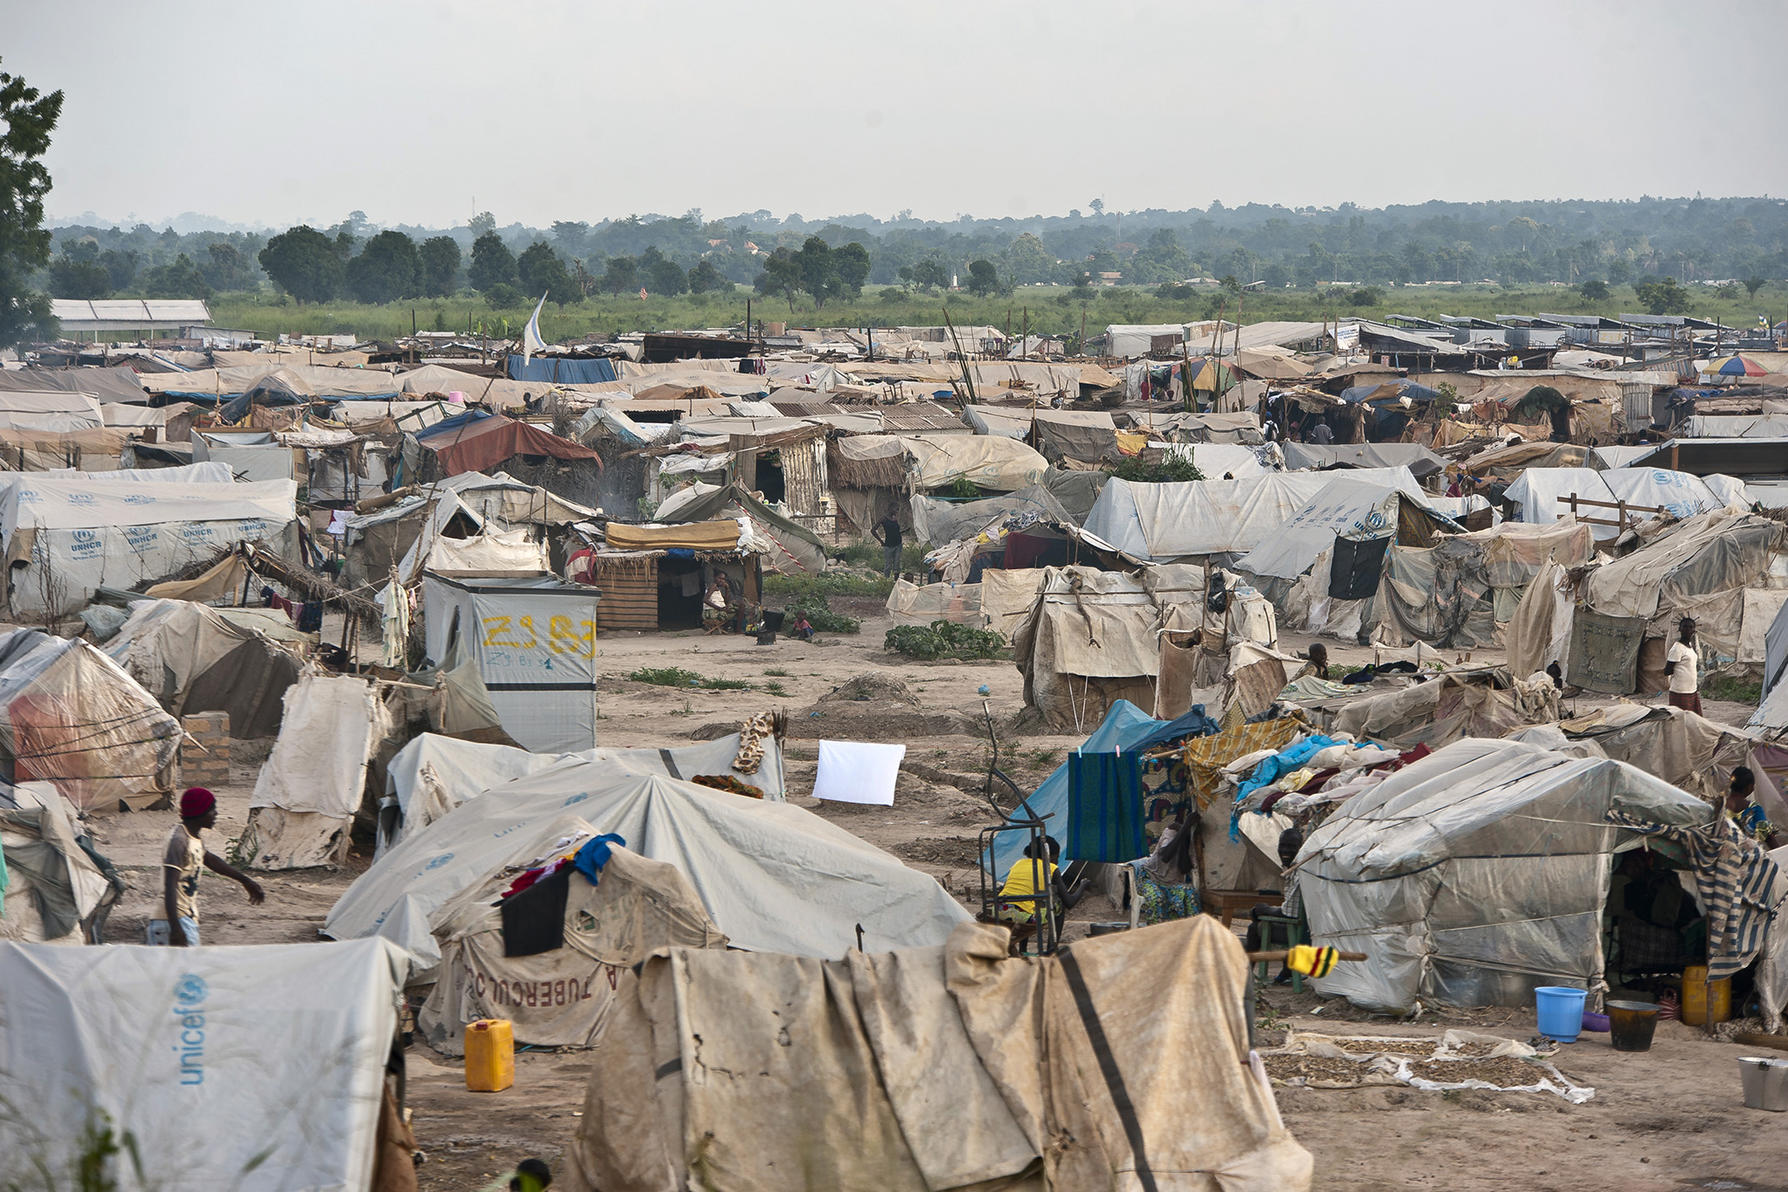 A view of the camp for internally displaced persons (IDPs) at M'poko Airport in Bangui, capital of the Central African Republic. (UN Photo/Catianne Tijerina)